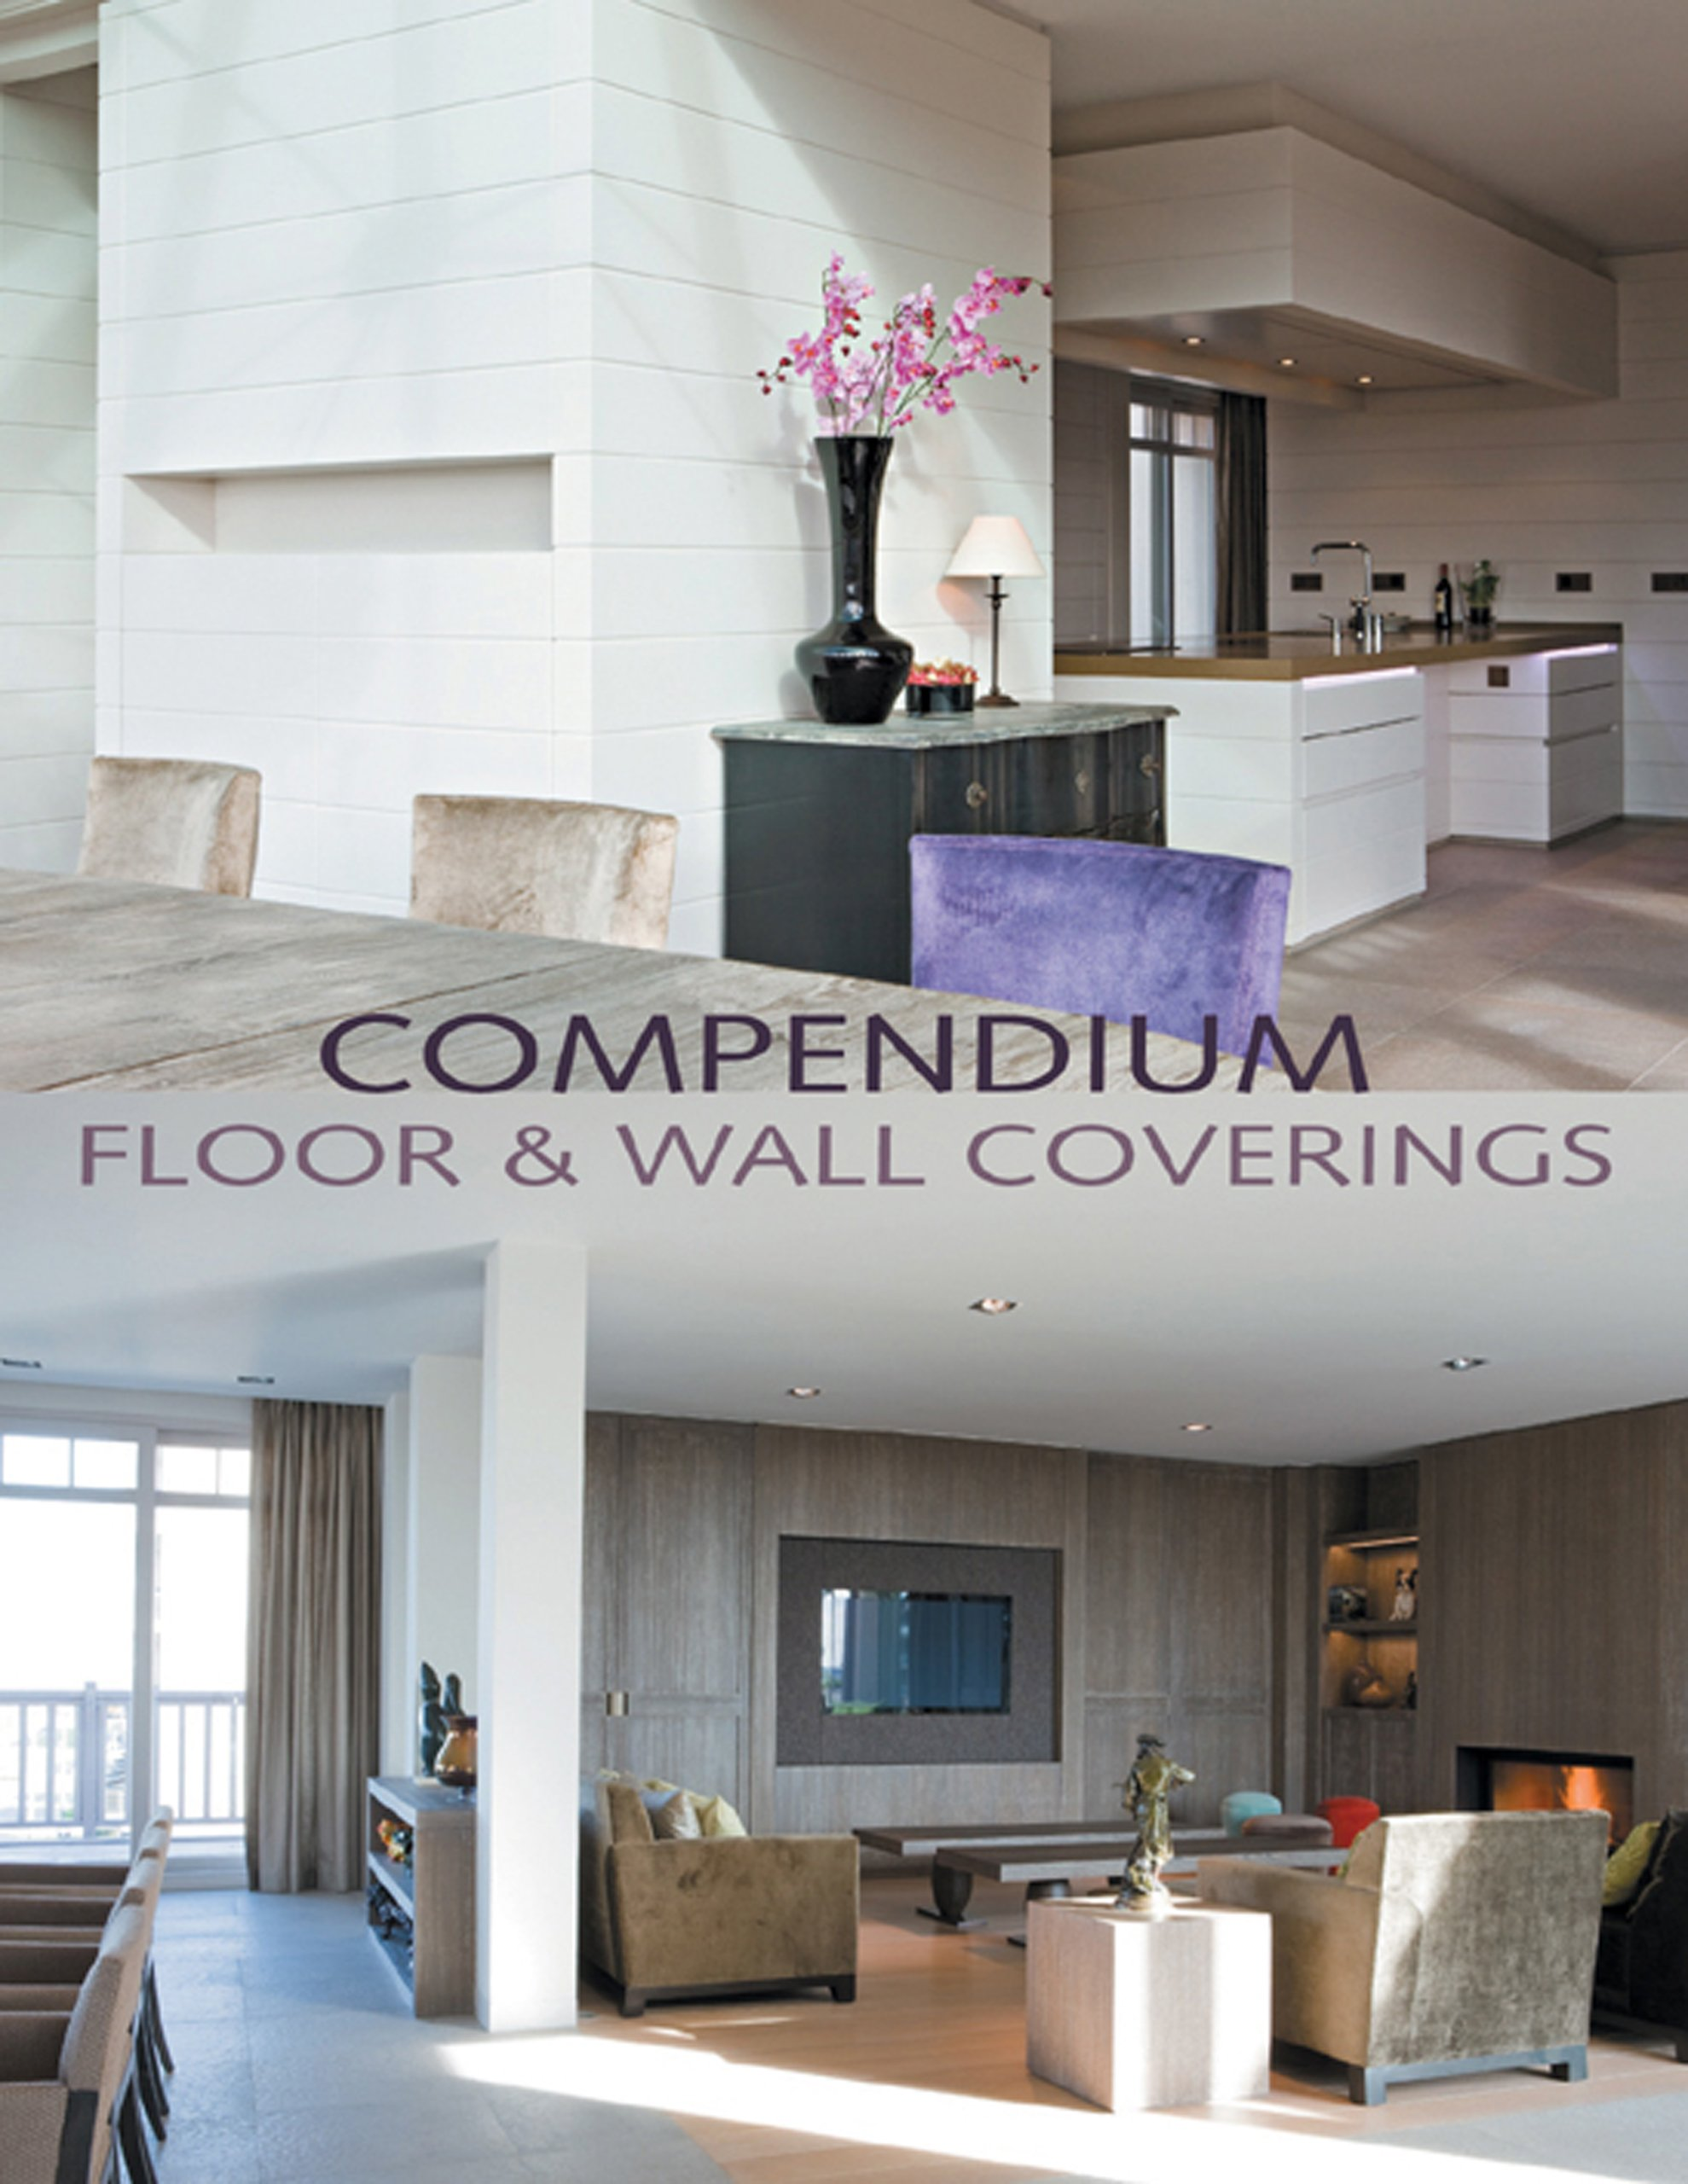 Compendium: Floor & Wall Coverings